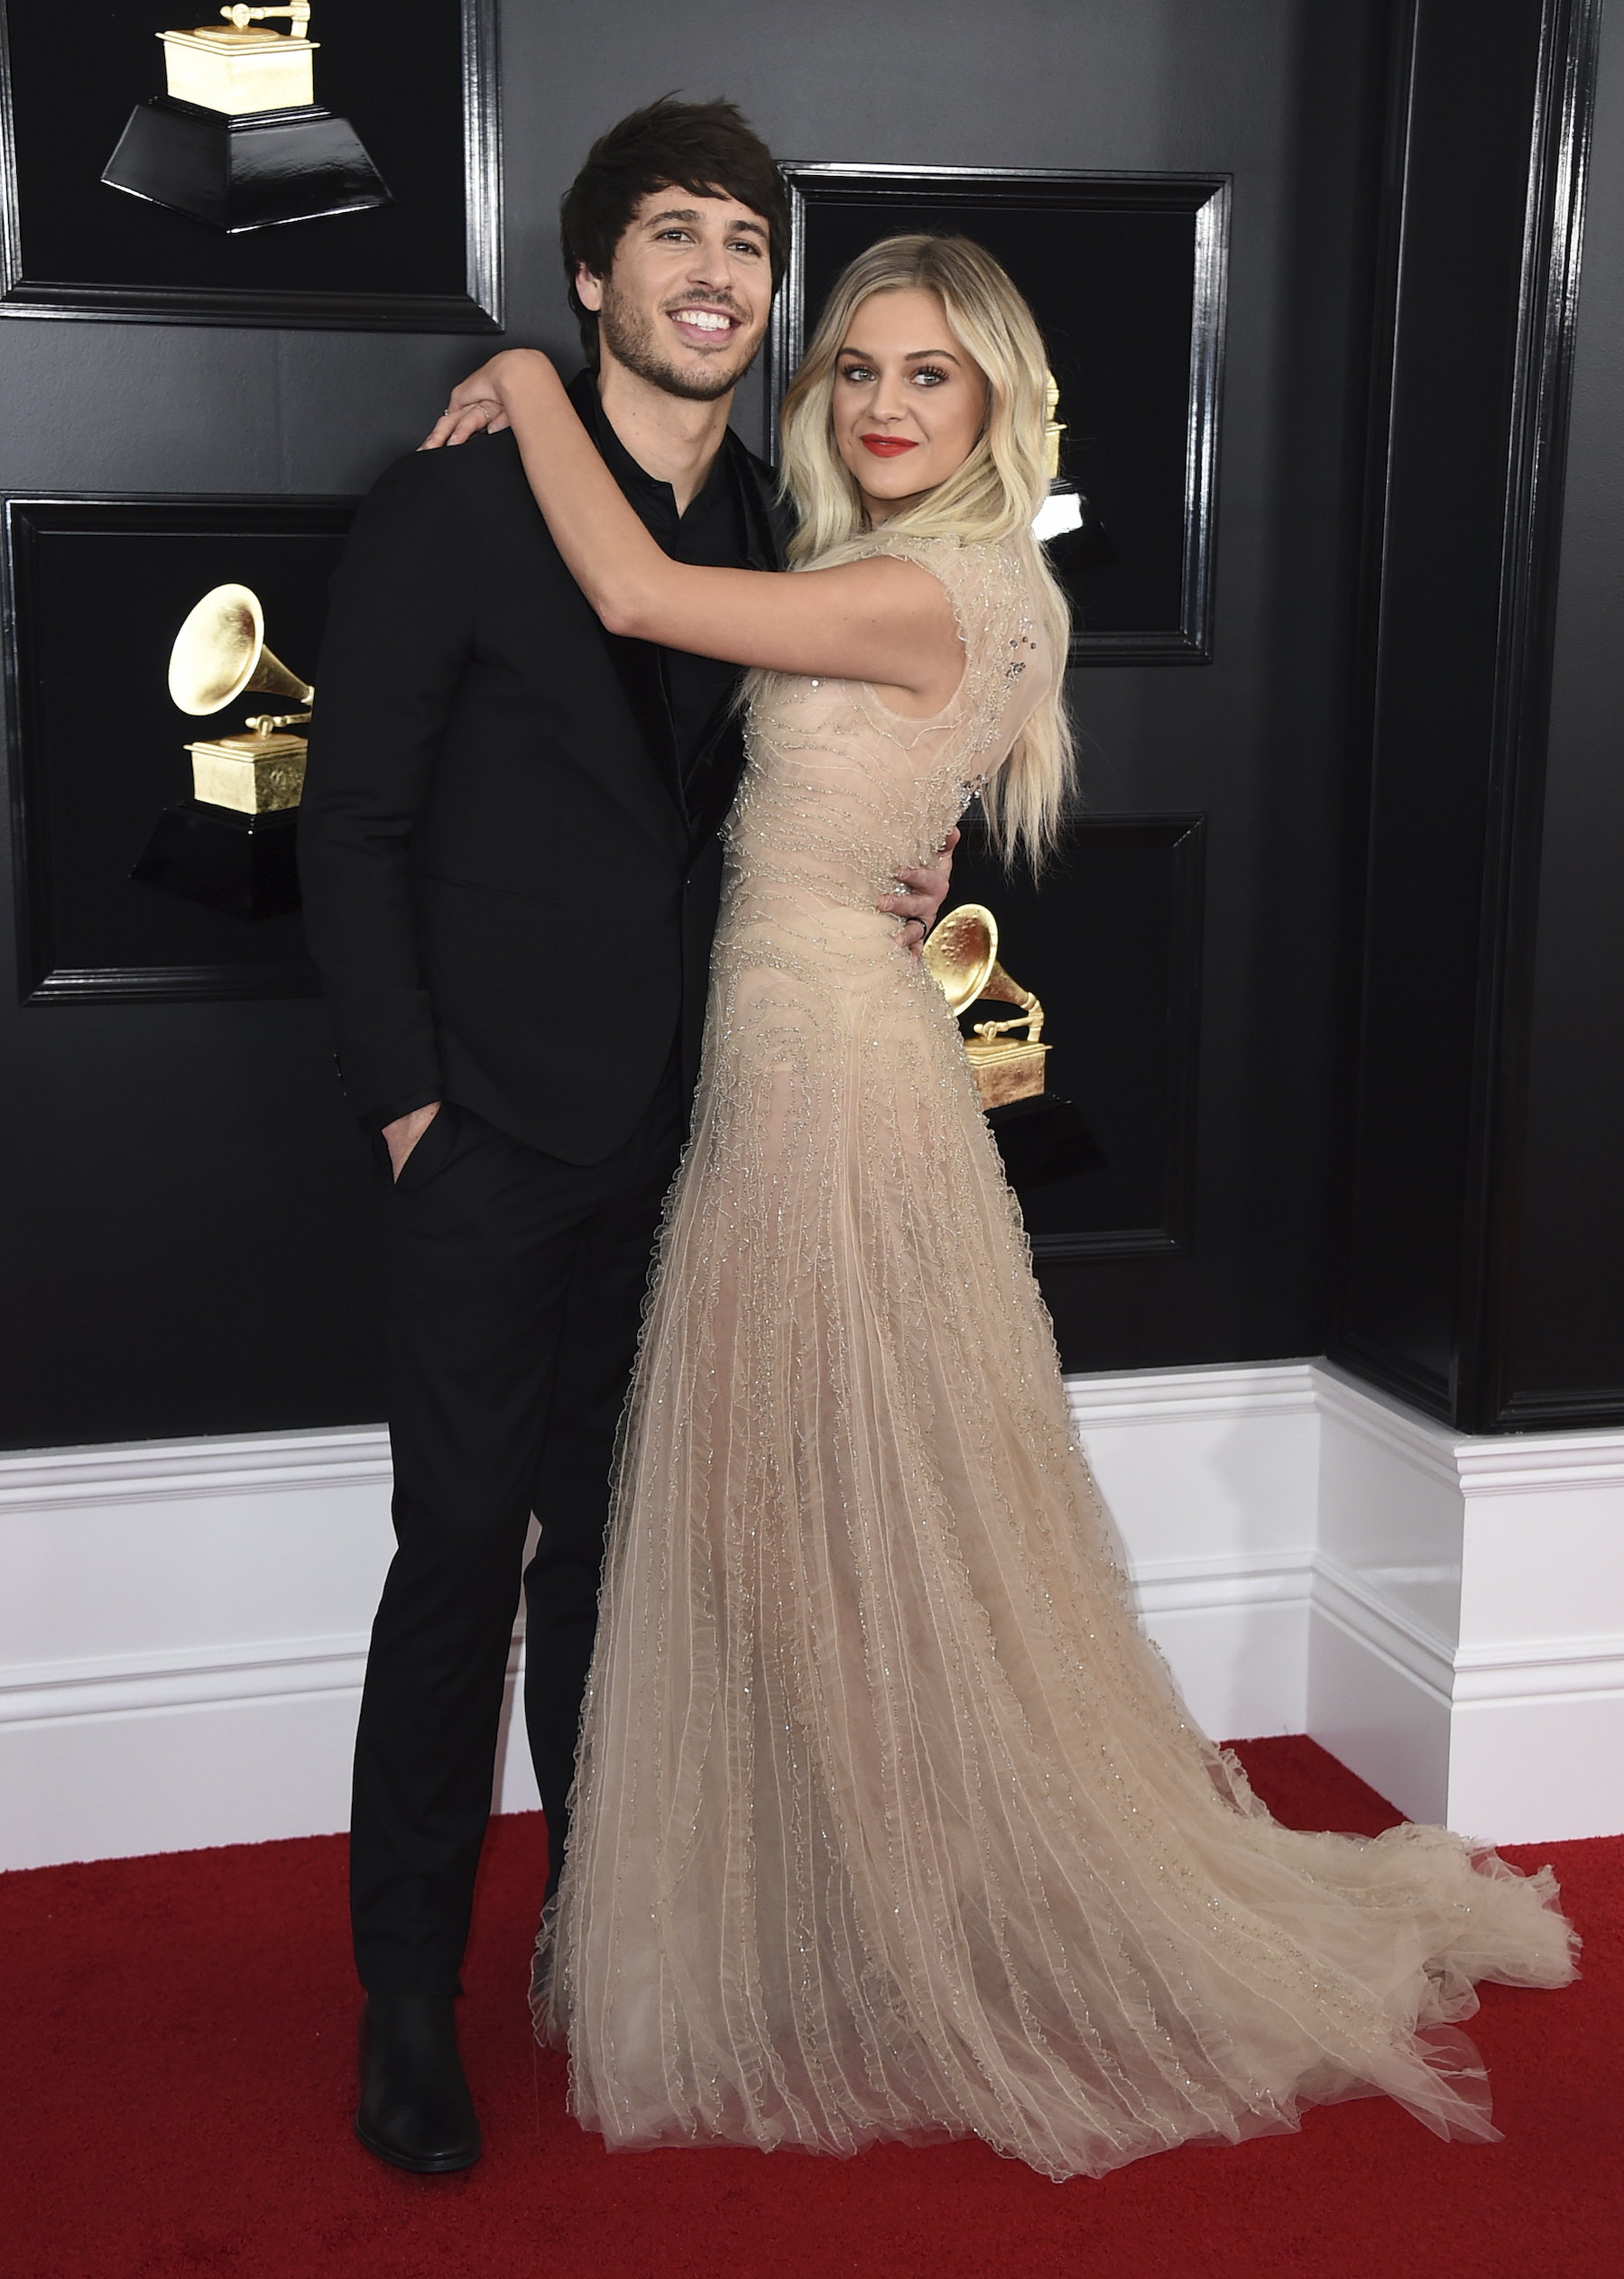 "<div class=""meta image-caption""><div class=""origin-logo origin-image ap""><span>AP</span></div><span class=""caption-text"">Morgan Evans, left, and Kelsea Ballerini arrive at the 61st annual Grammy Awards at the Staples Center on Sunday, Feb. 10, 2019, in Los Angeles. (Jordan Strauss/Invision/AP)</span></div>"